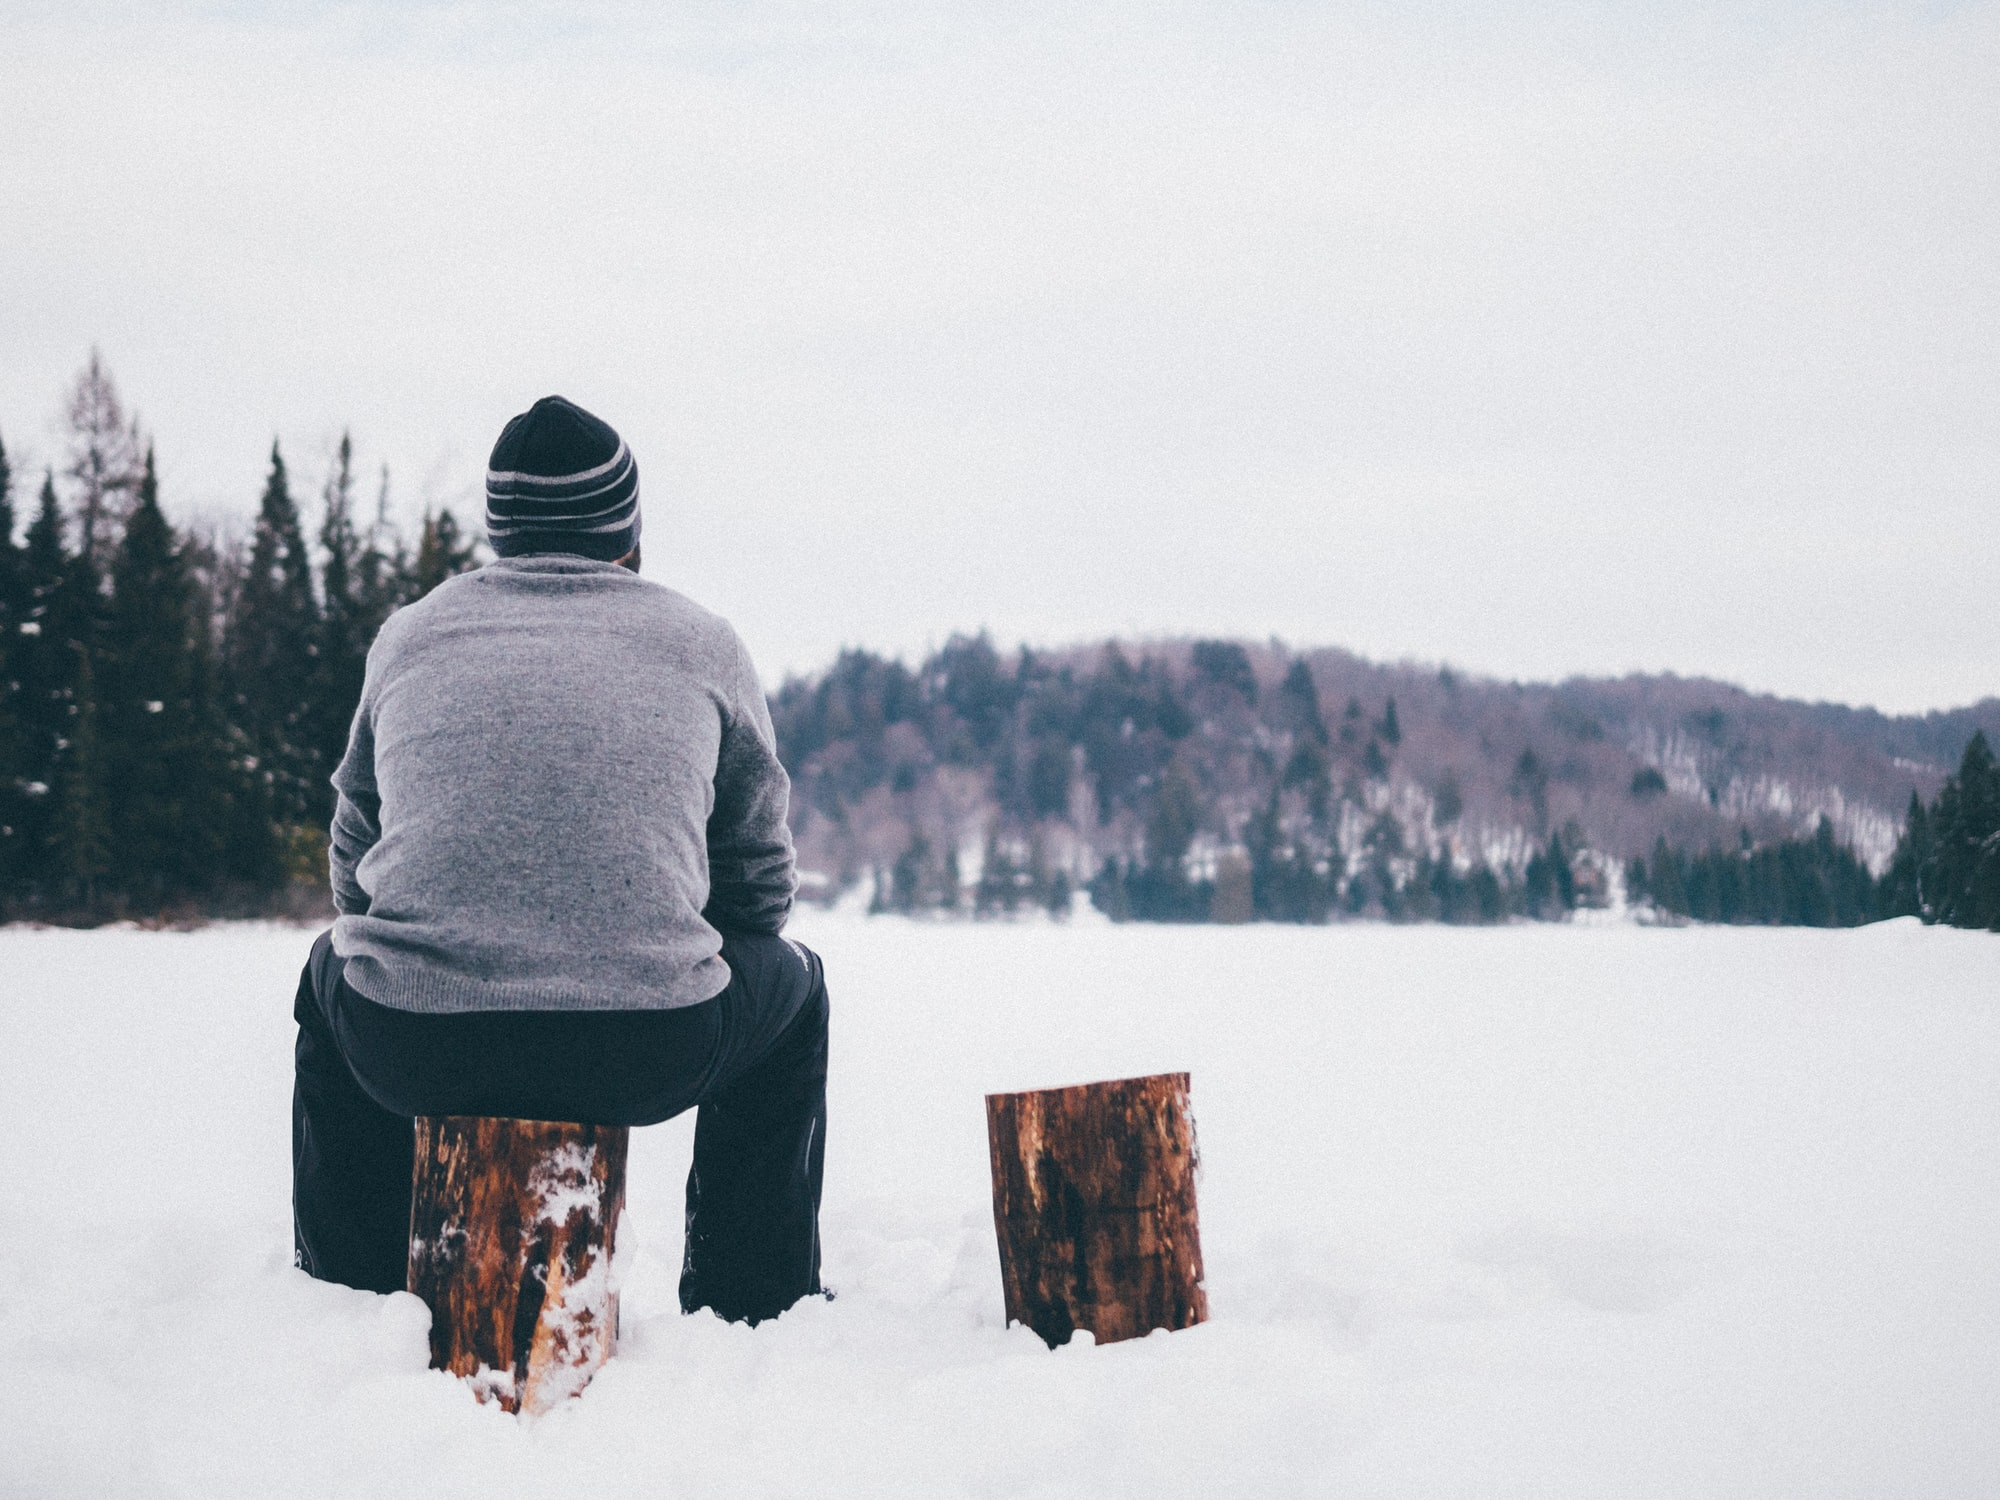 Man sits on log in snow